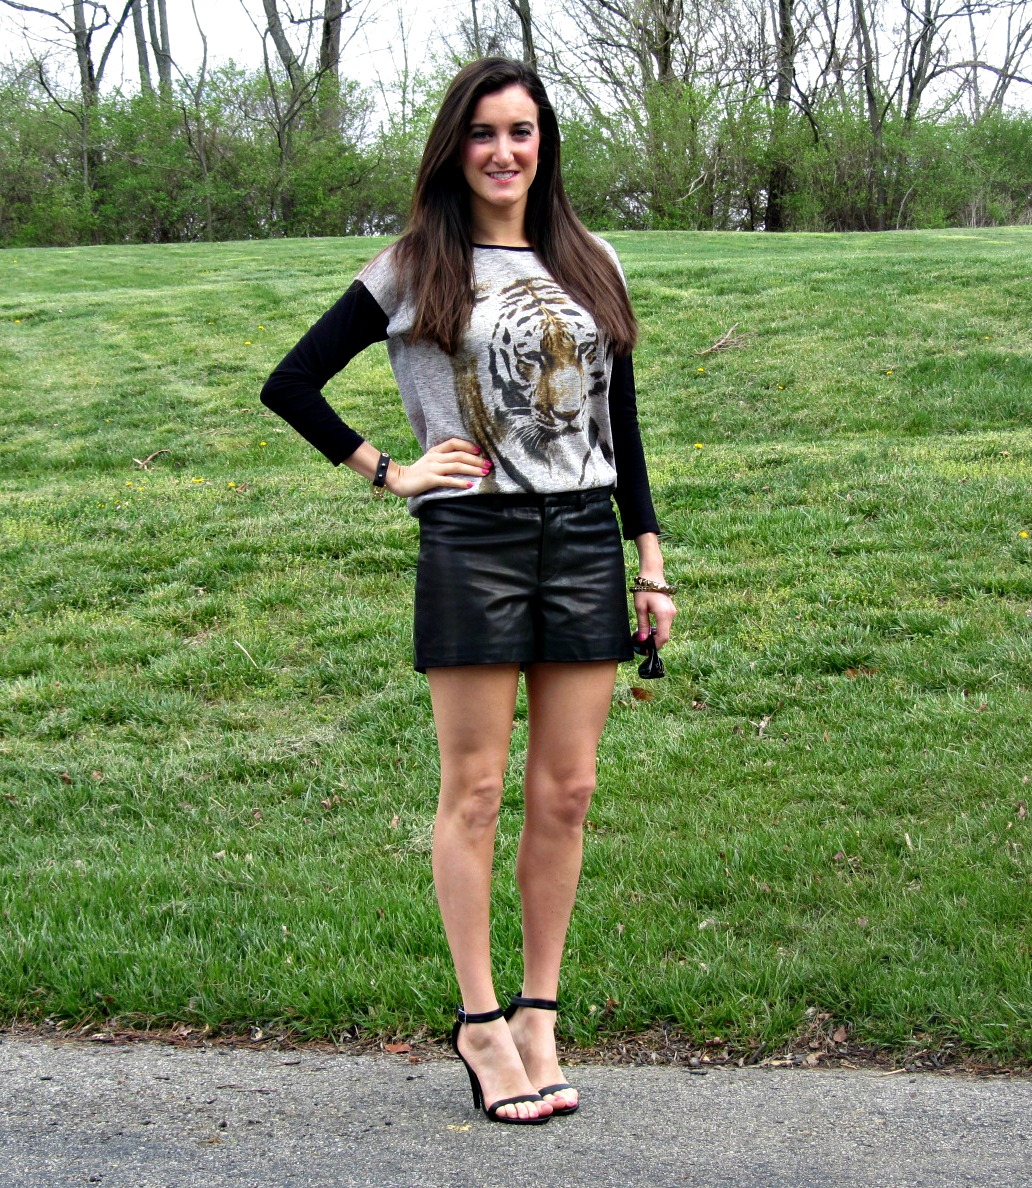 Chelsea and Violet Tiger Top, Gianni Bini leather shorts